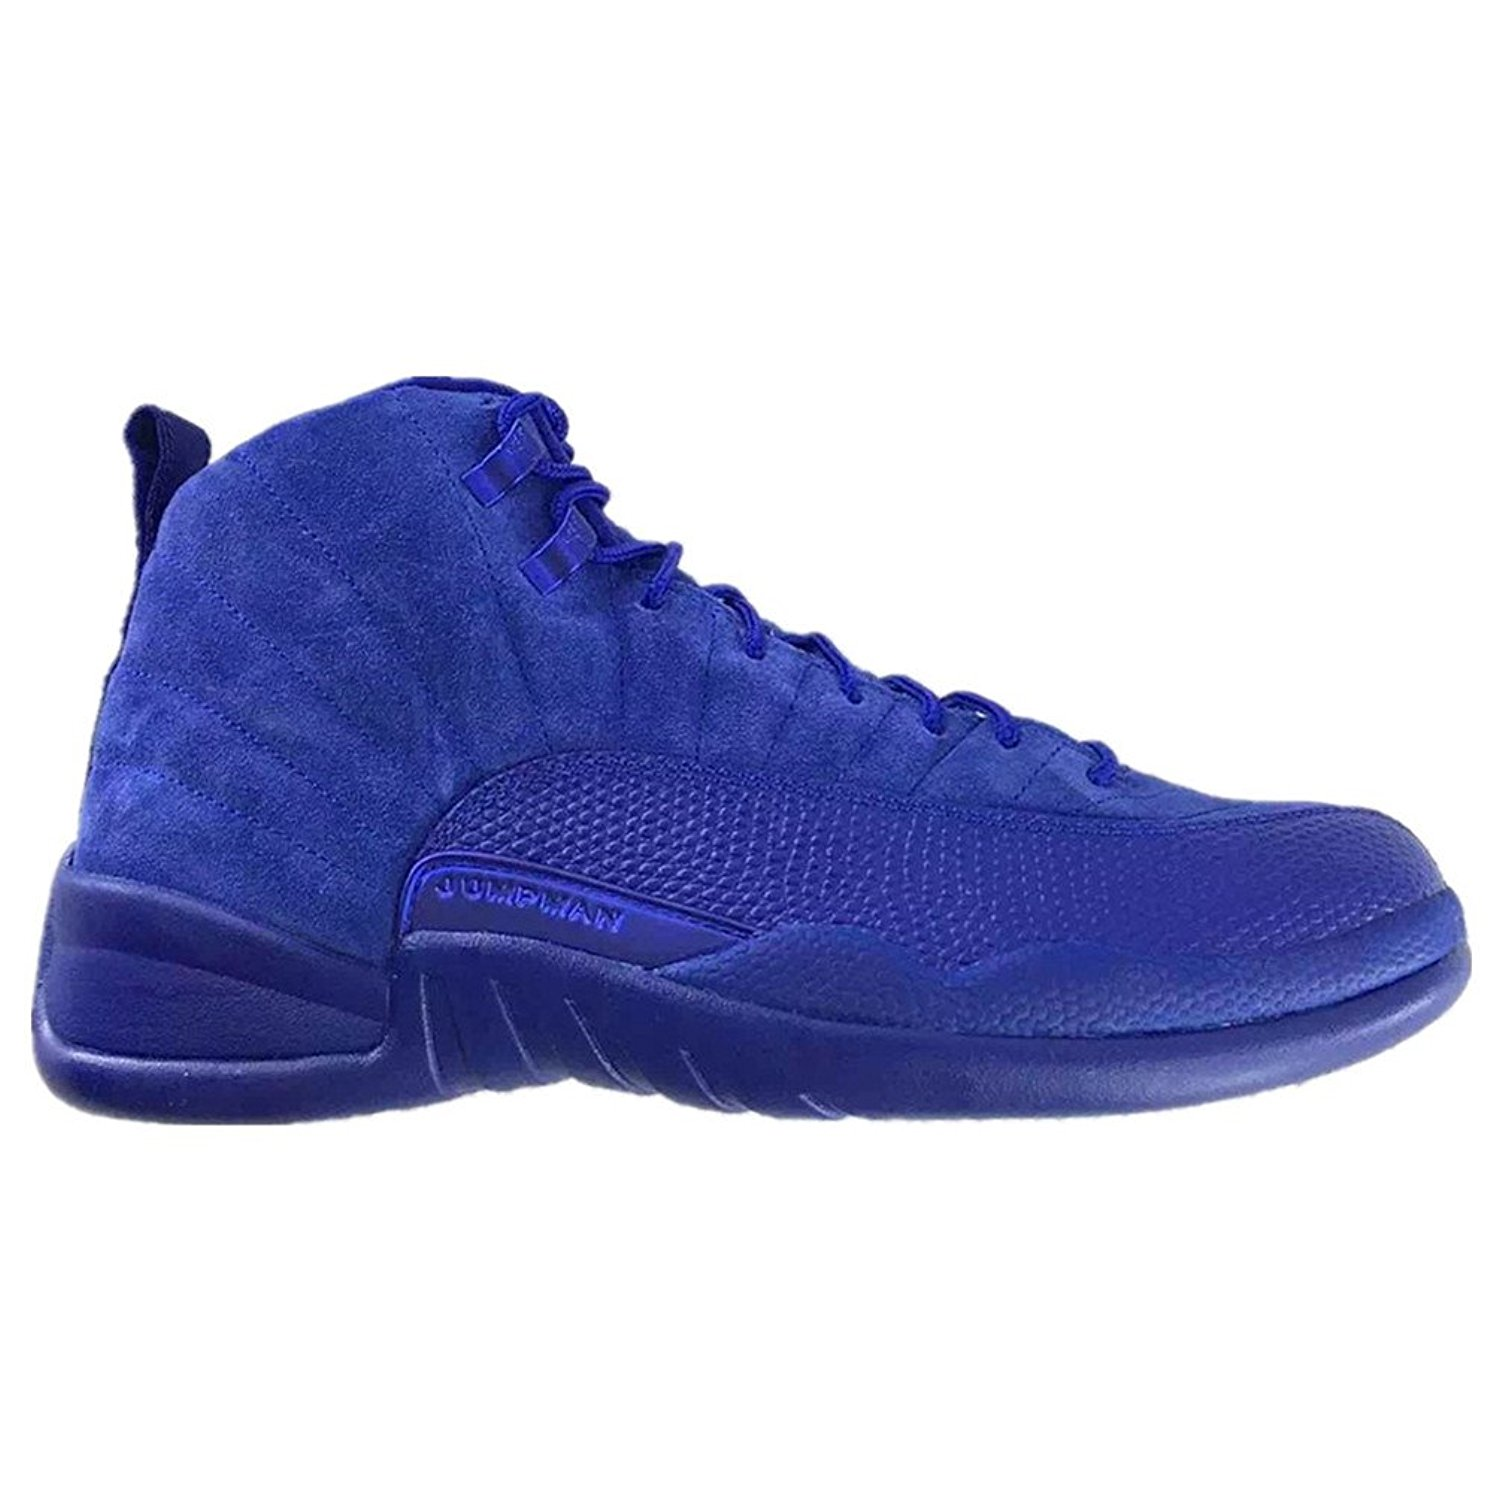 345688e6ef2 Get Quotations · Air Jordan 12 Premium Royal Blue AJ12 Basketball Shoes  130690-400 Men US8